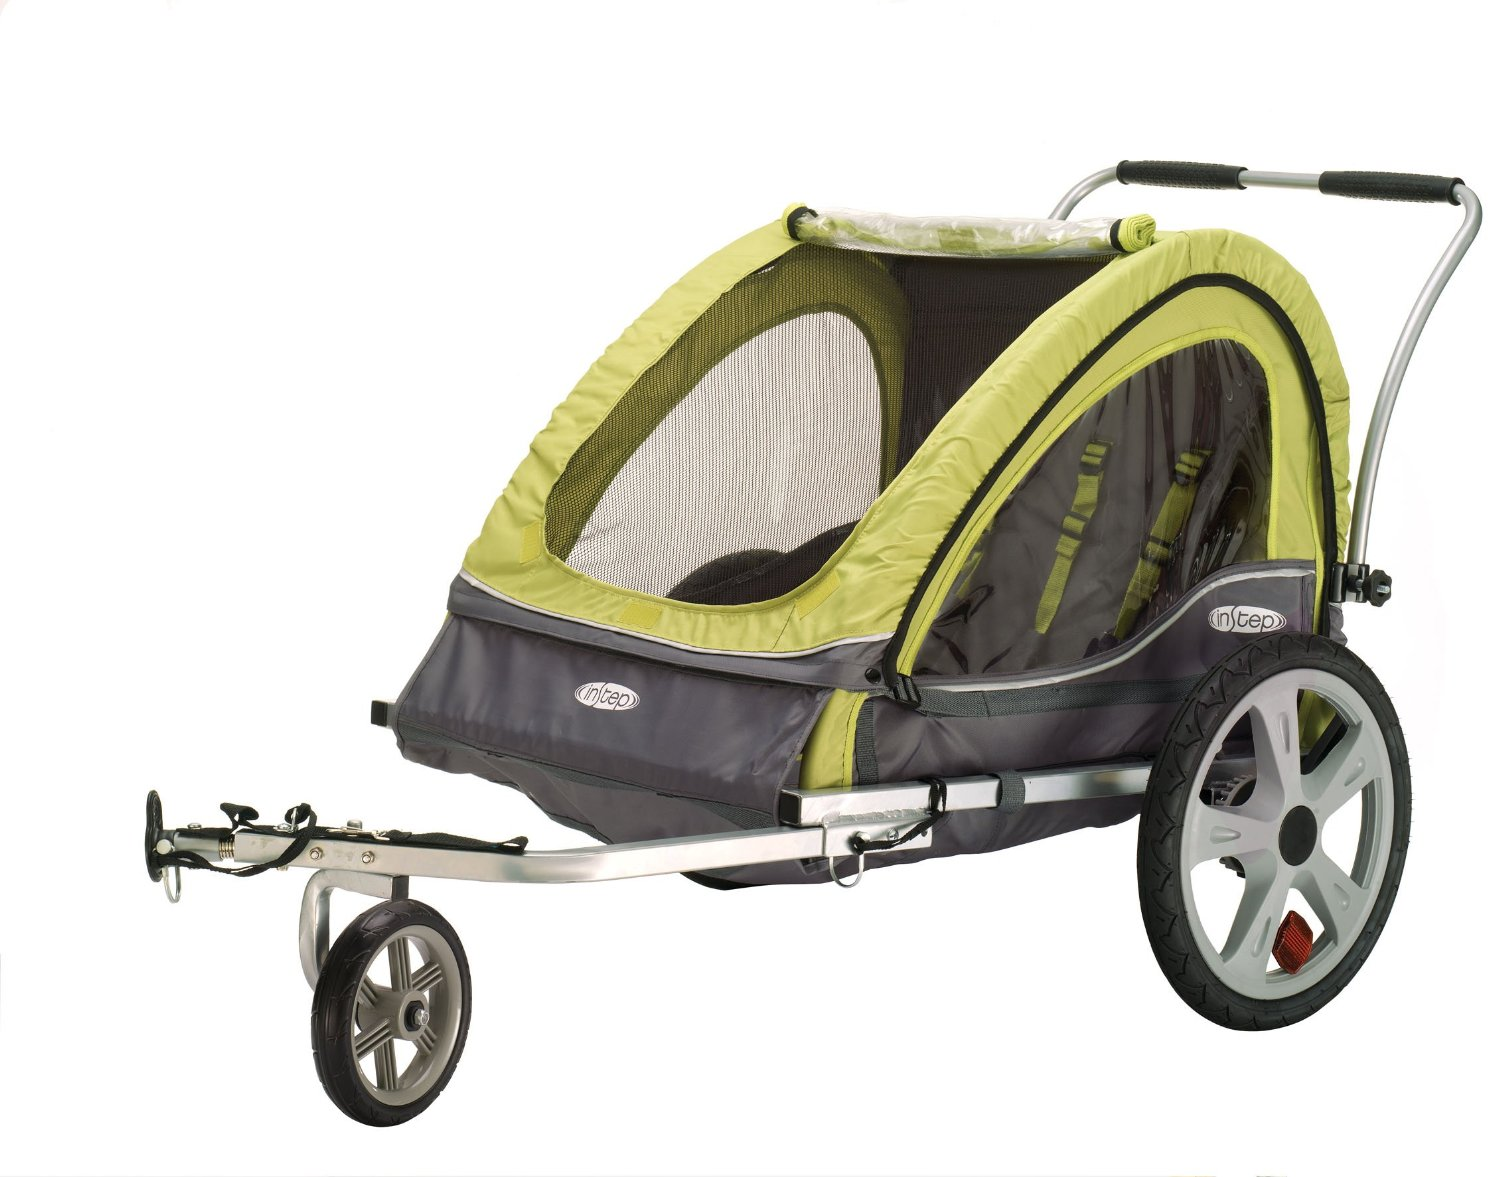 instep-sierra-double-bicycle-trailer